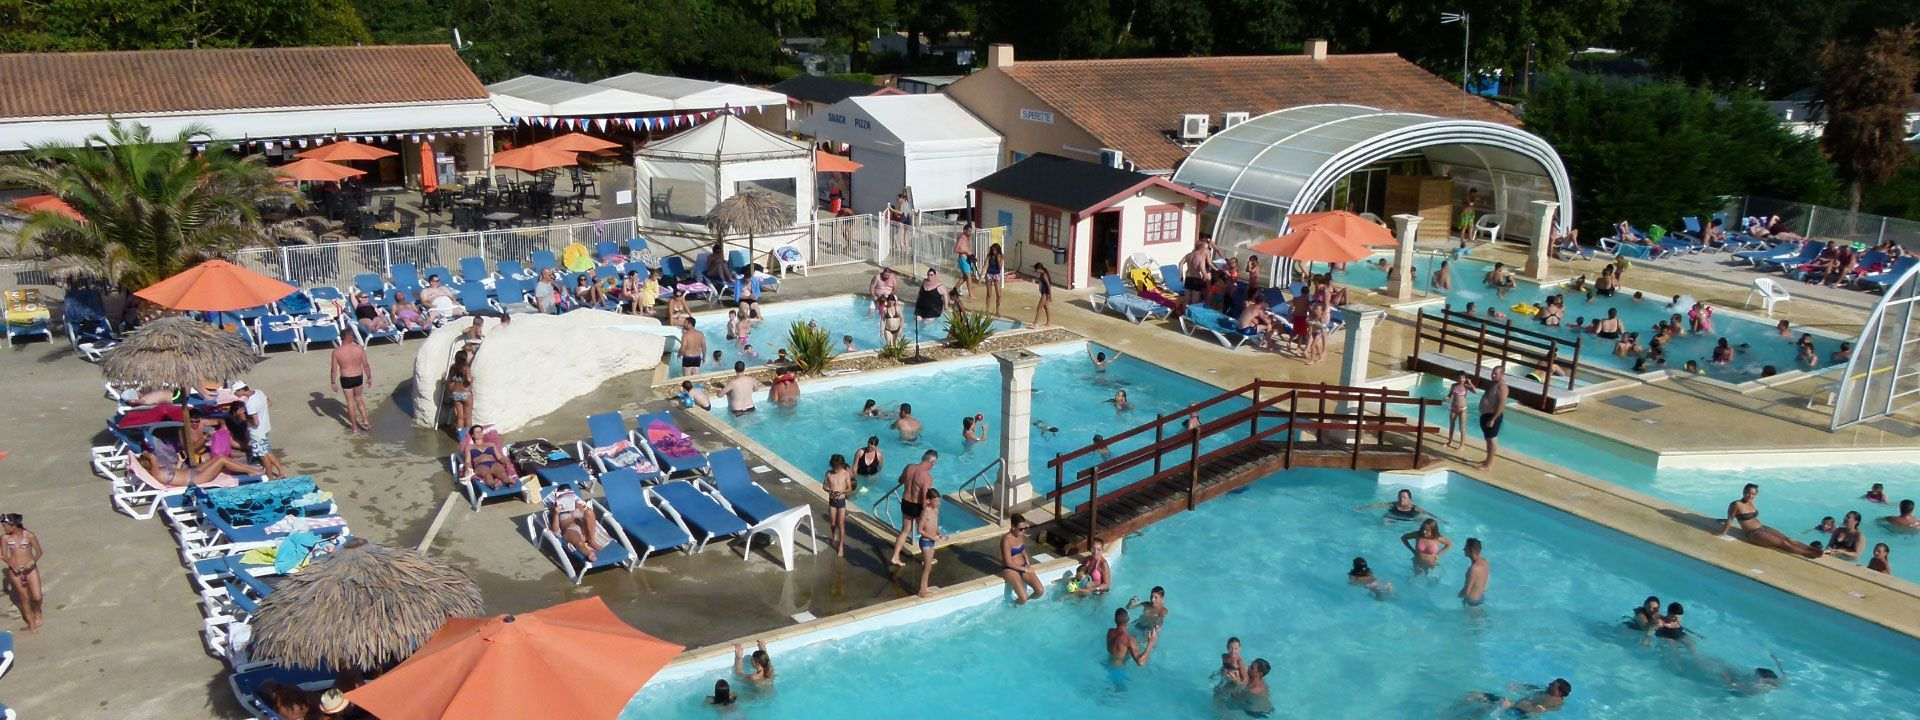 Vacance camping charente maritime vacances camping demi pension